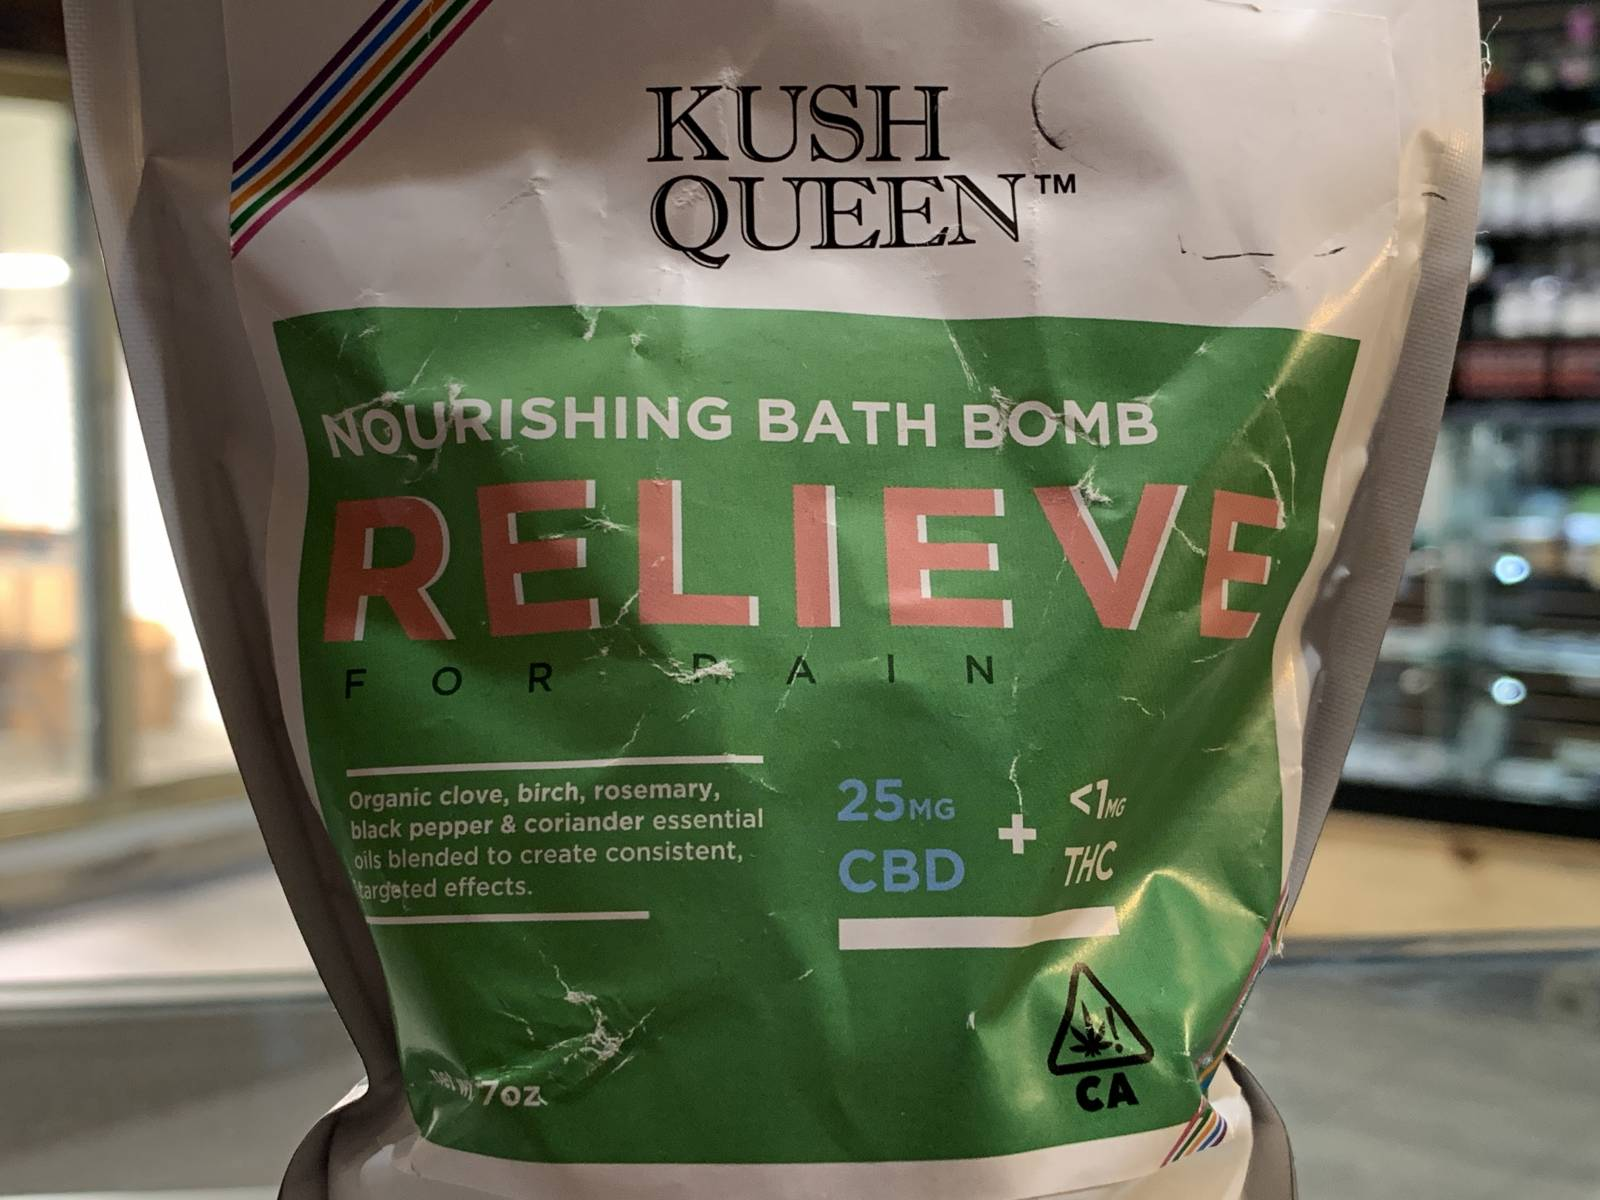 Kush Queen Relieve cbd bath bomb